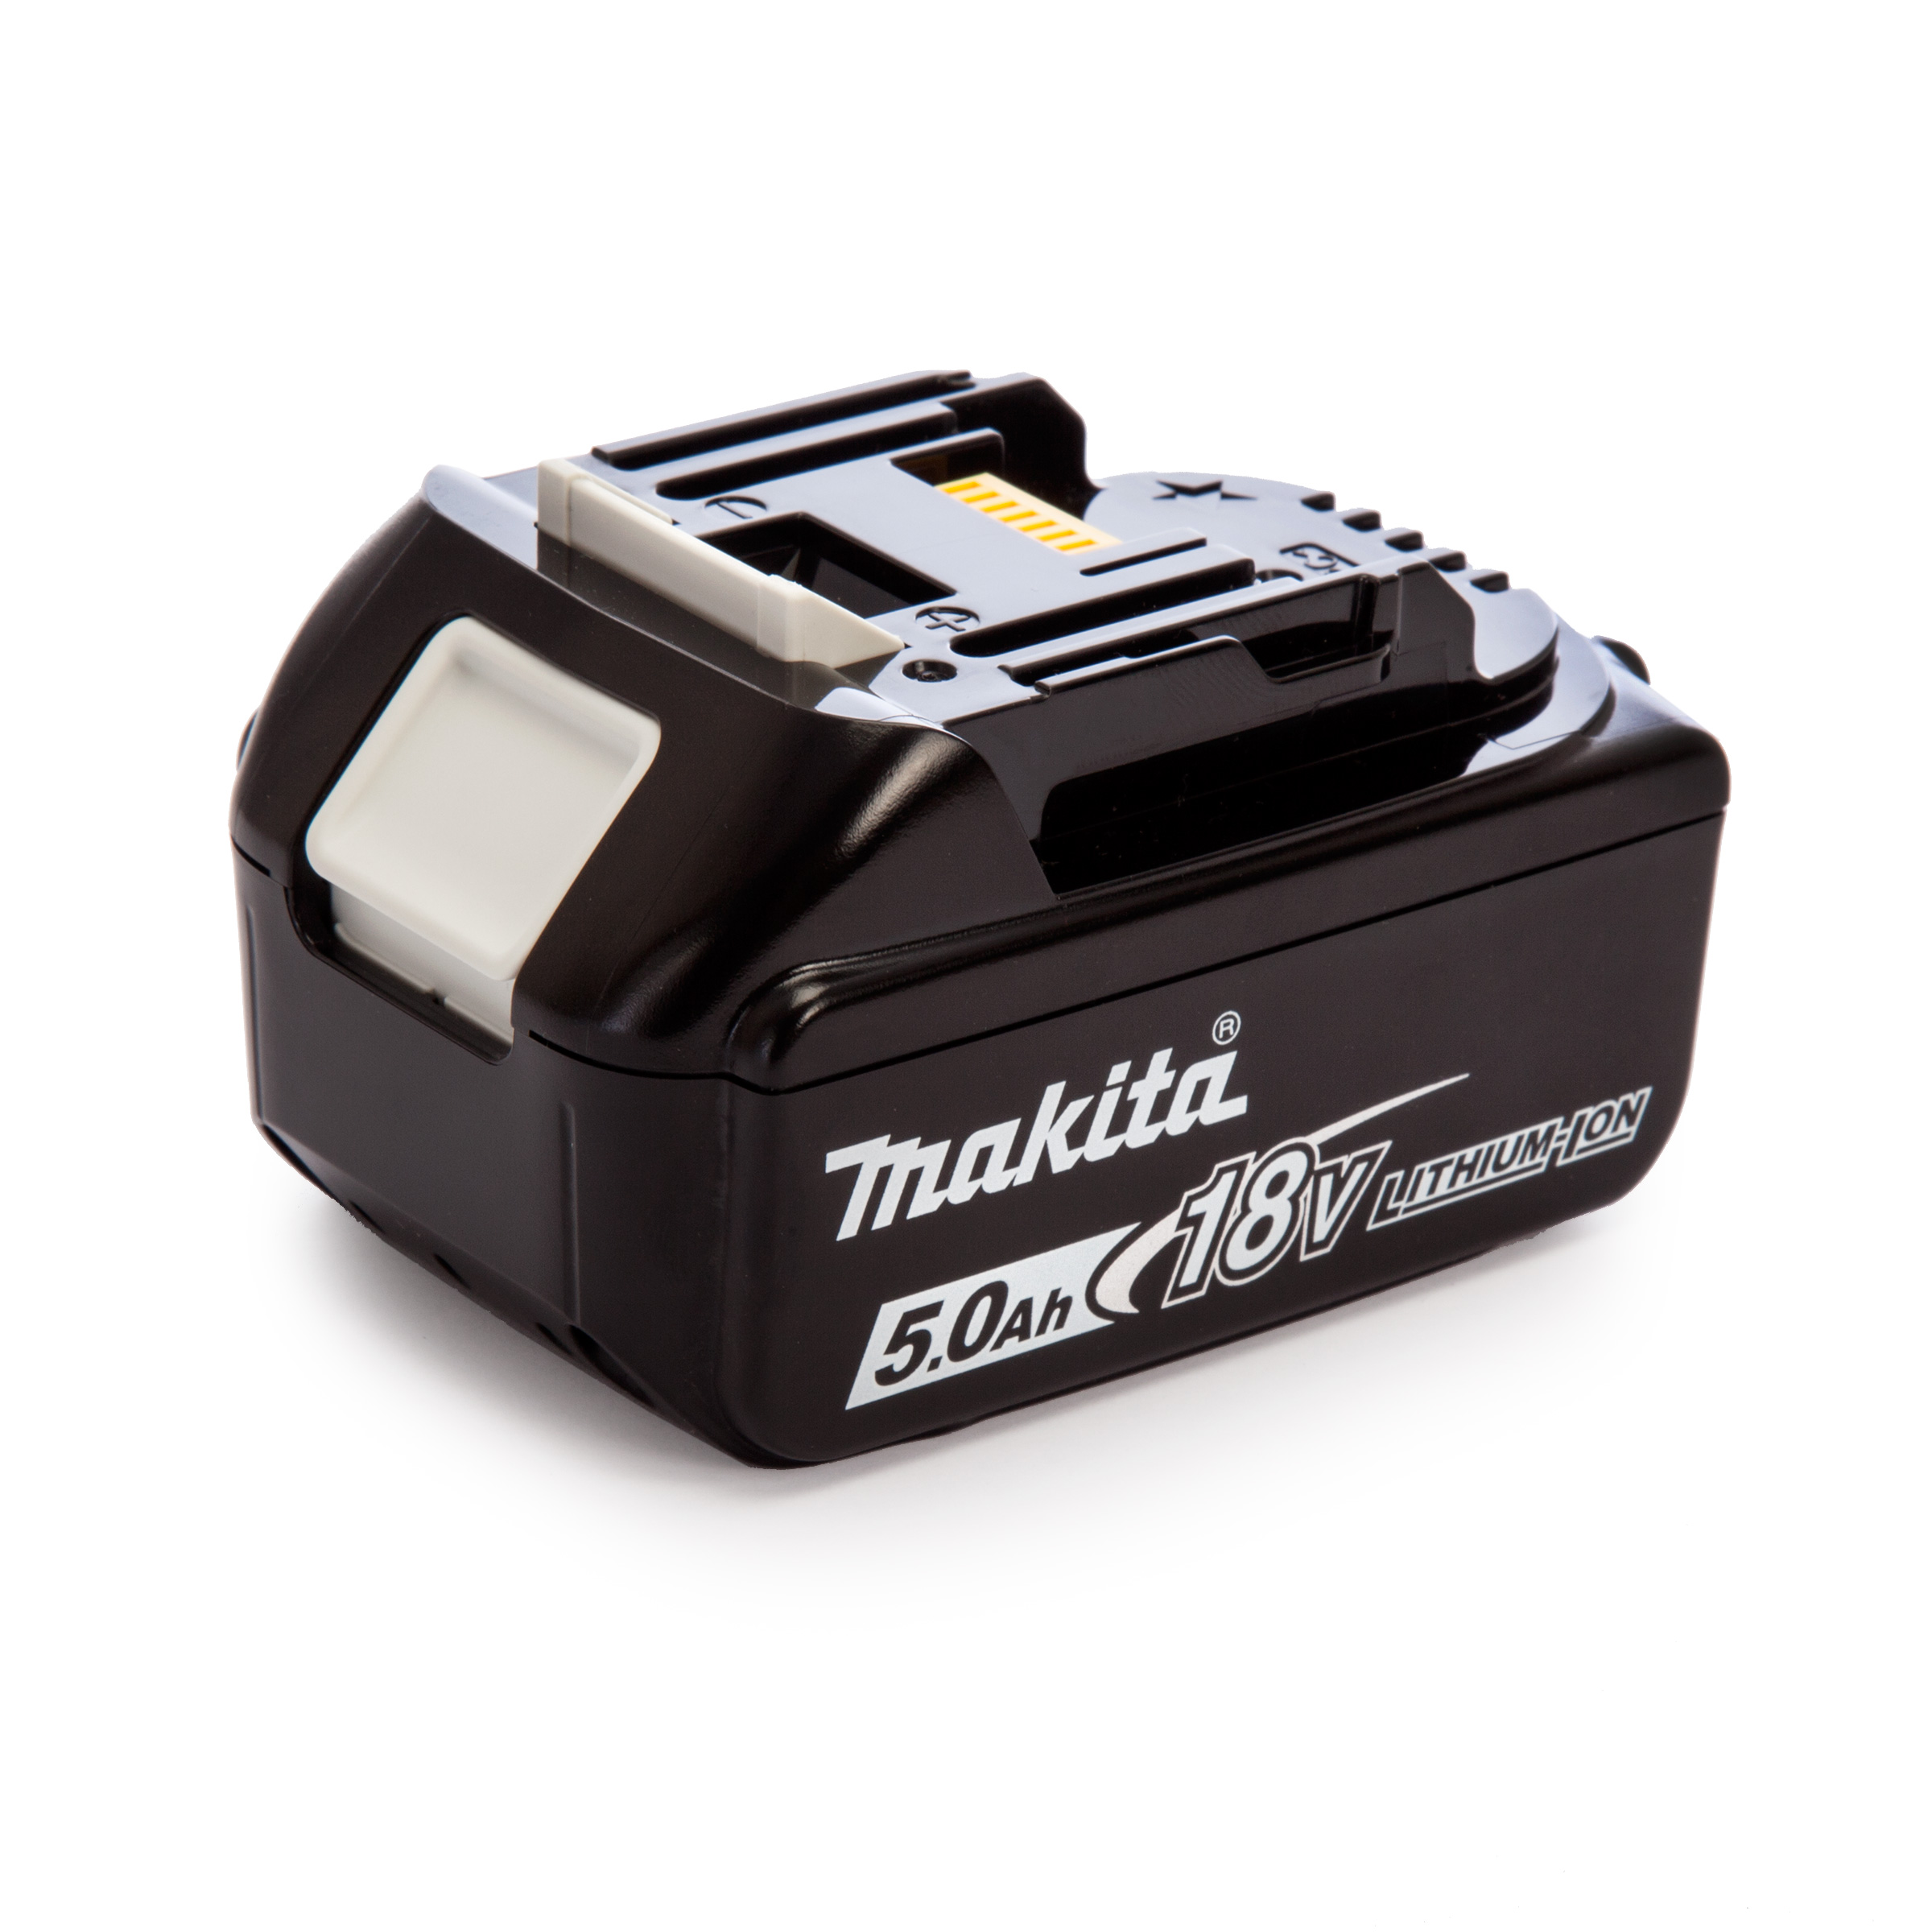 MAKITA 18V BATTERY 5.0AH LI-ION - BL1850